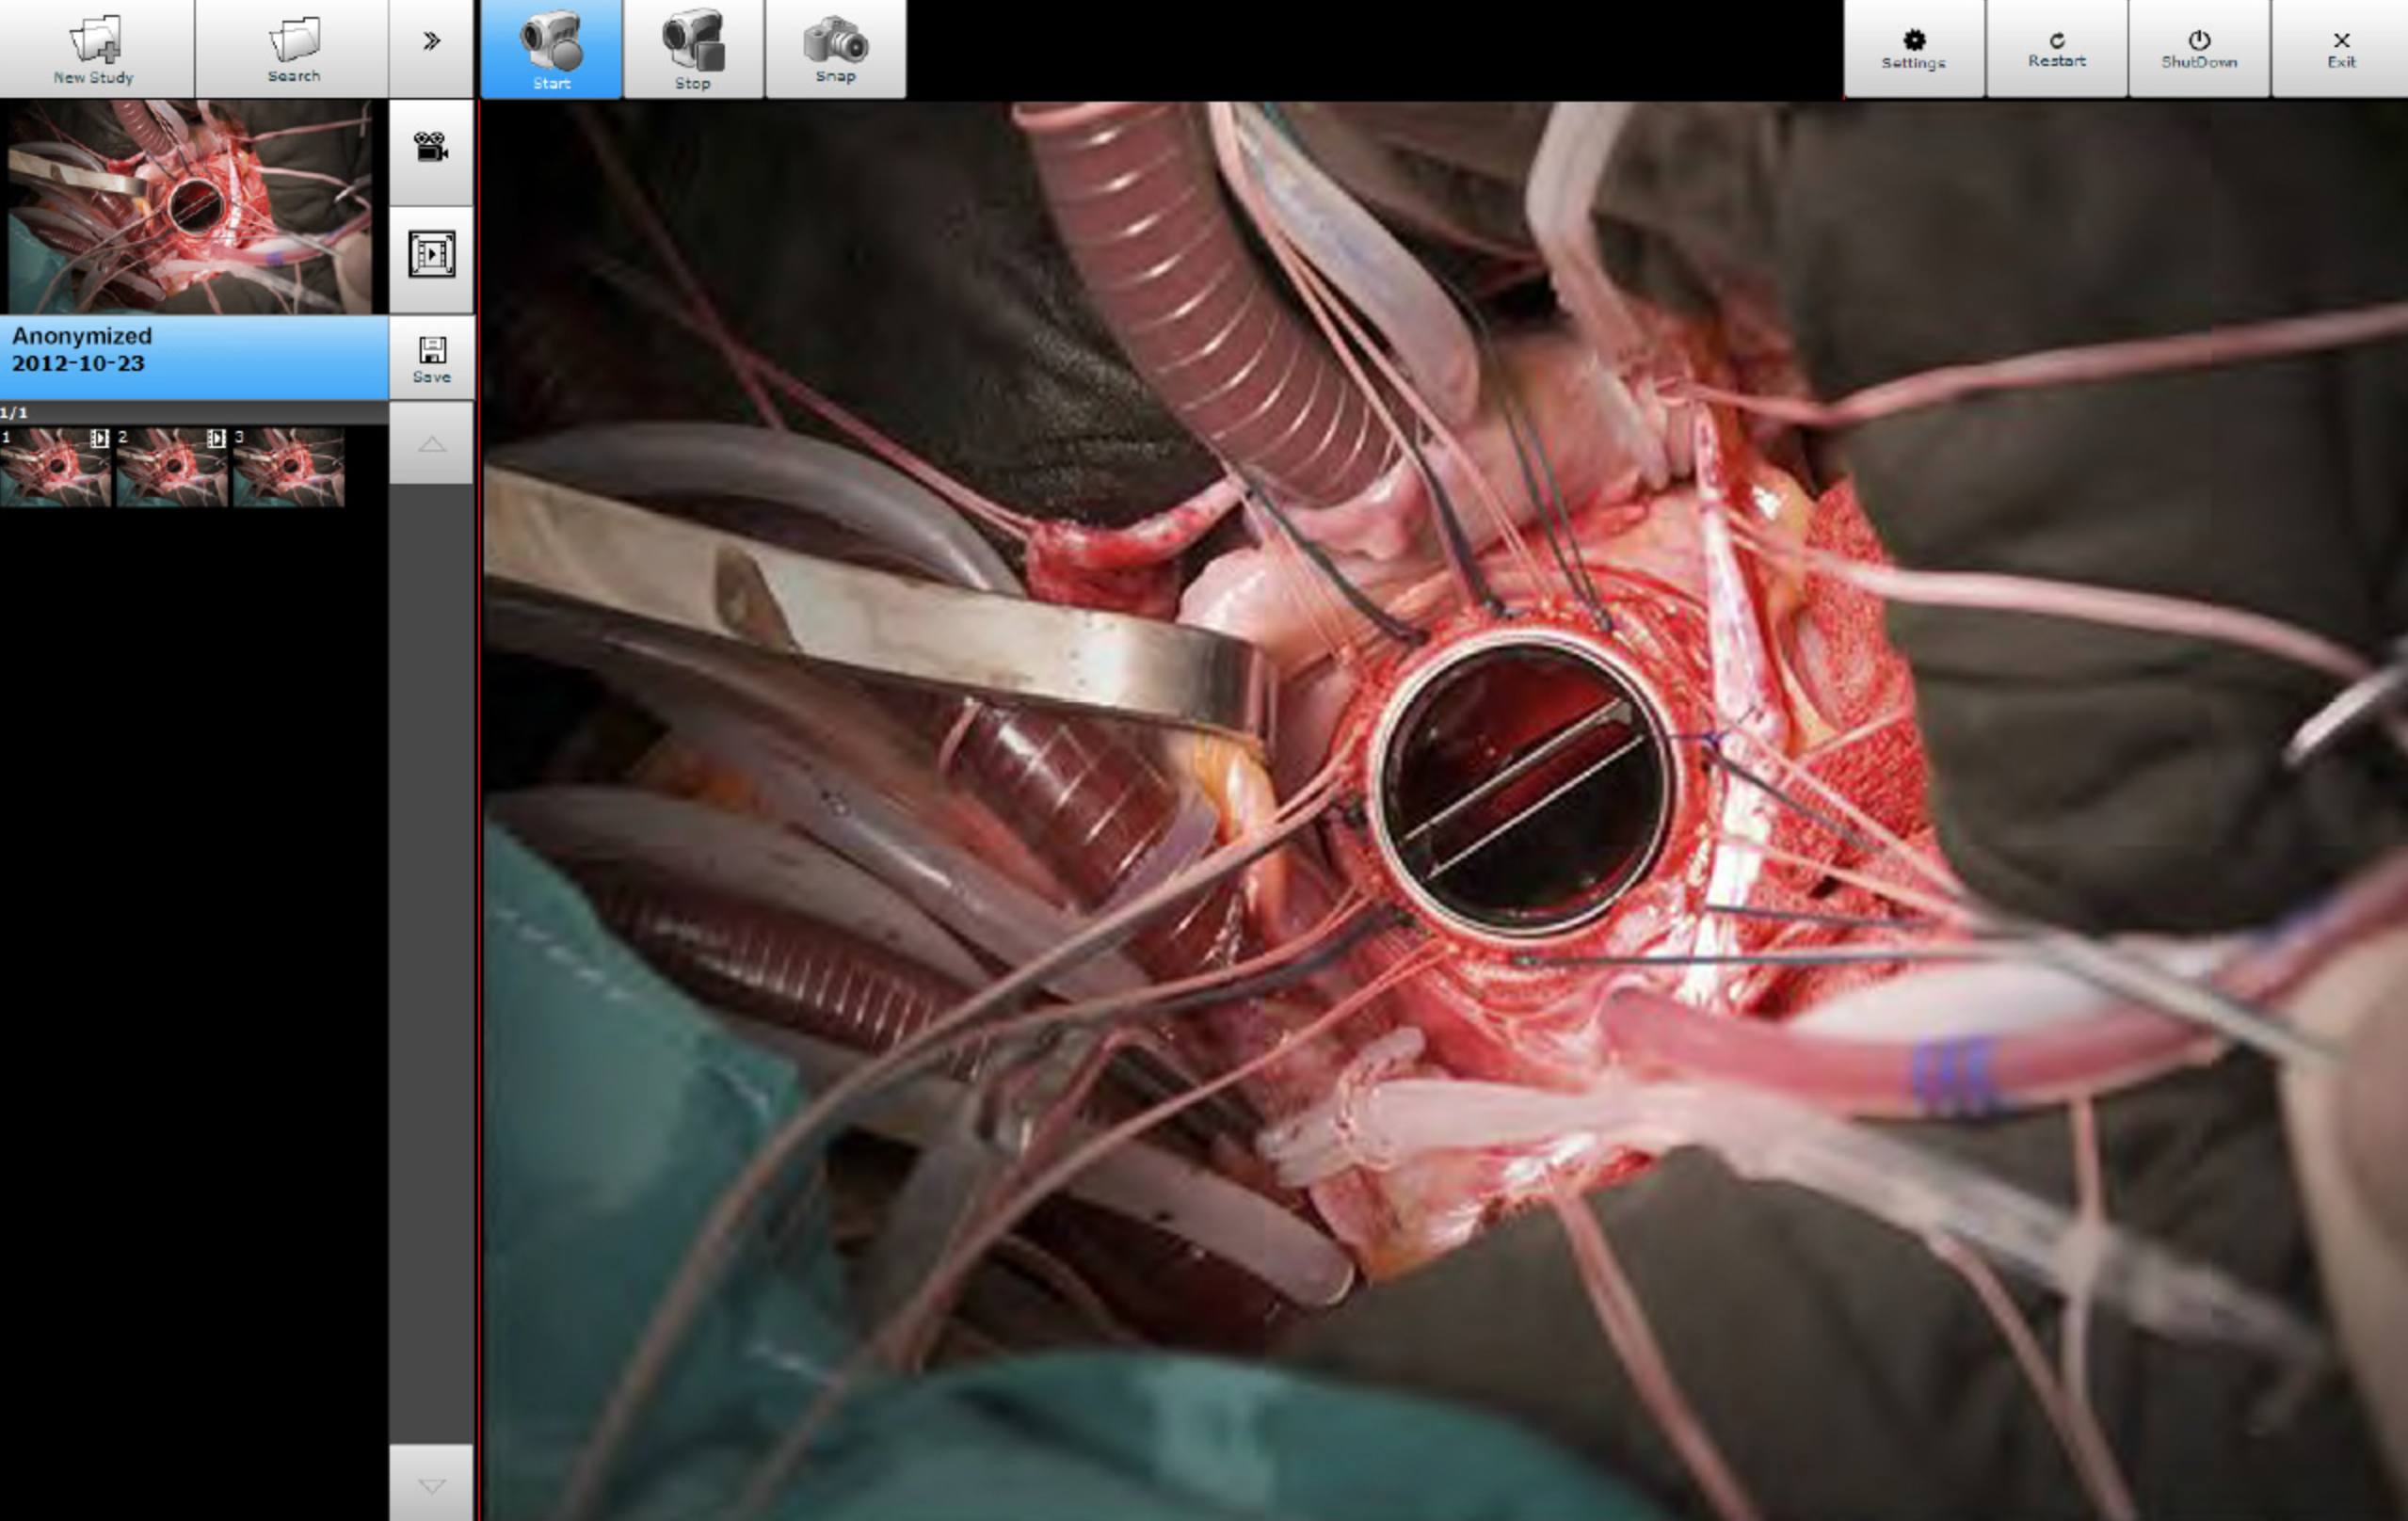 video station recording during surgery screenshot